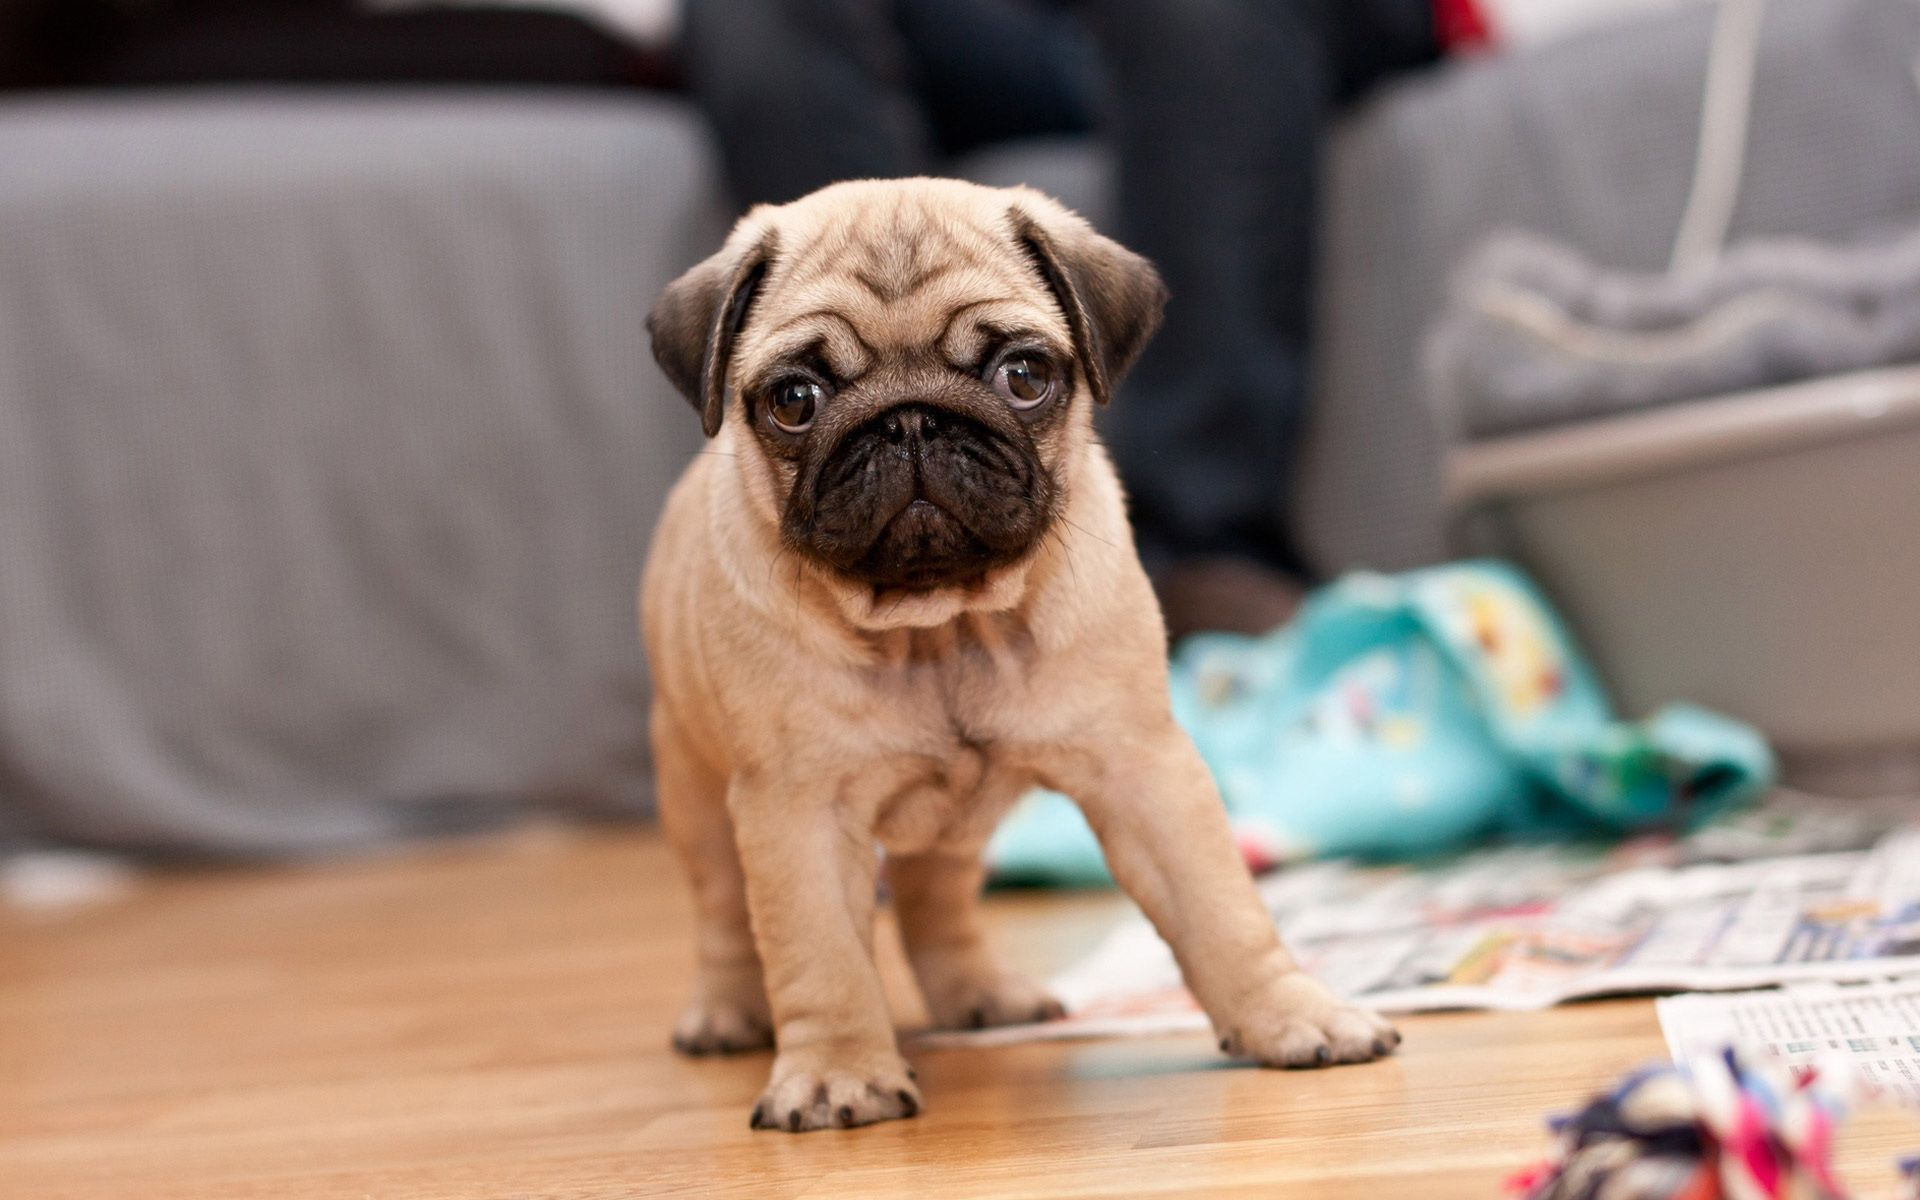 Pug Puppy Hd Wallpaper Free Download Hd Wallpapers Dogs Puppy